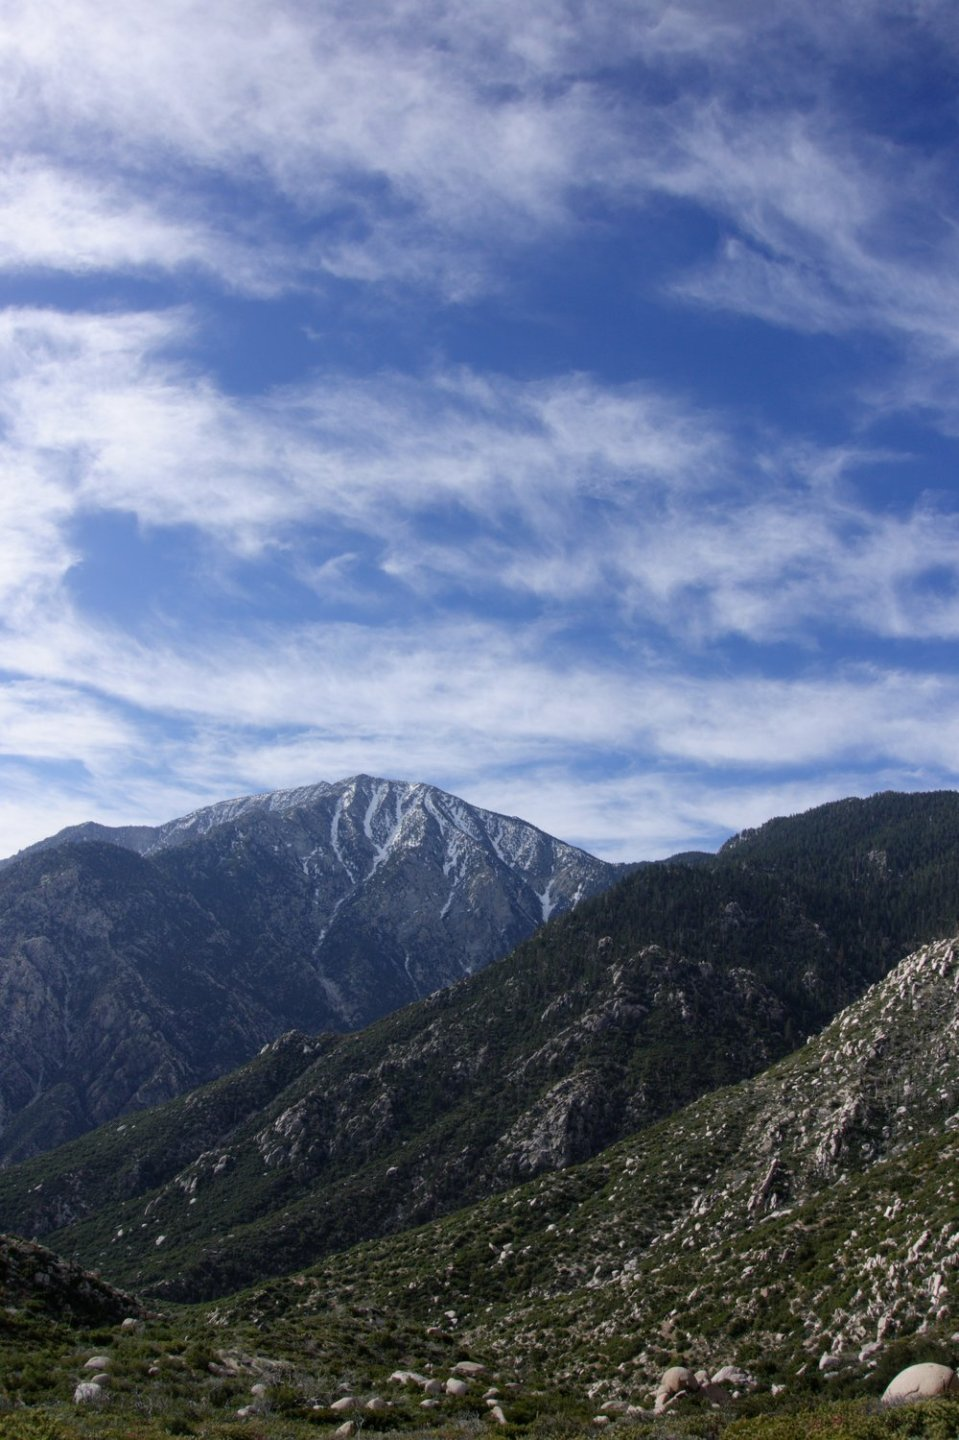 Coming from the wonderful town of Idyllwild after being stuck there for two days due to back pain. We climb in elevation and reach the forested areas with snow covered mountain peaks. I also learn that if there is a mountain, we're most likely going over it.